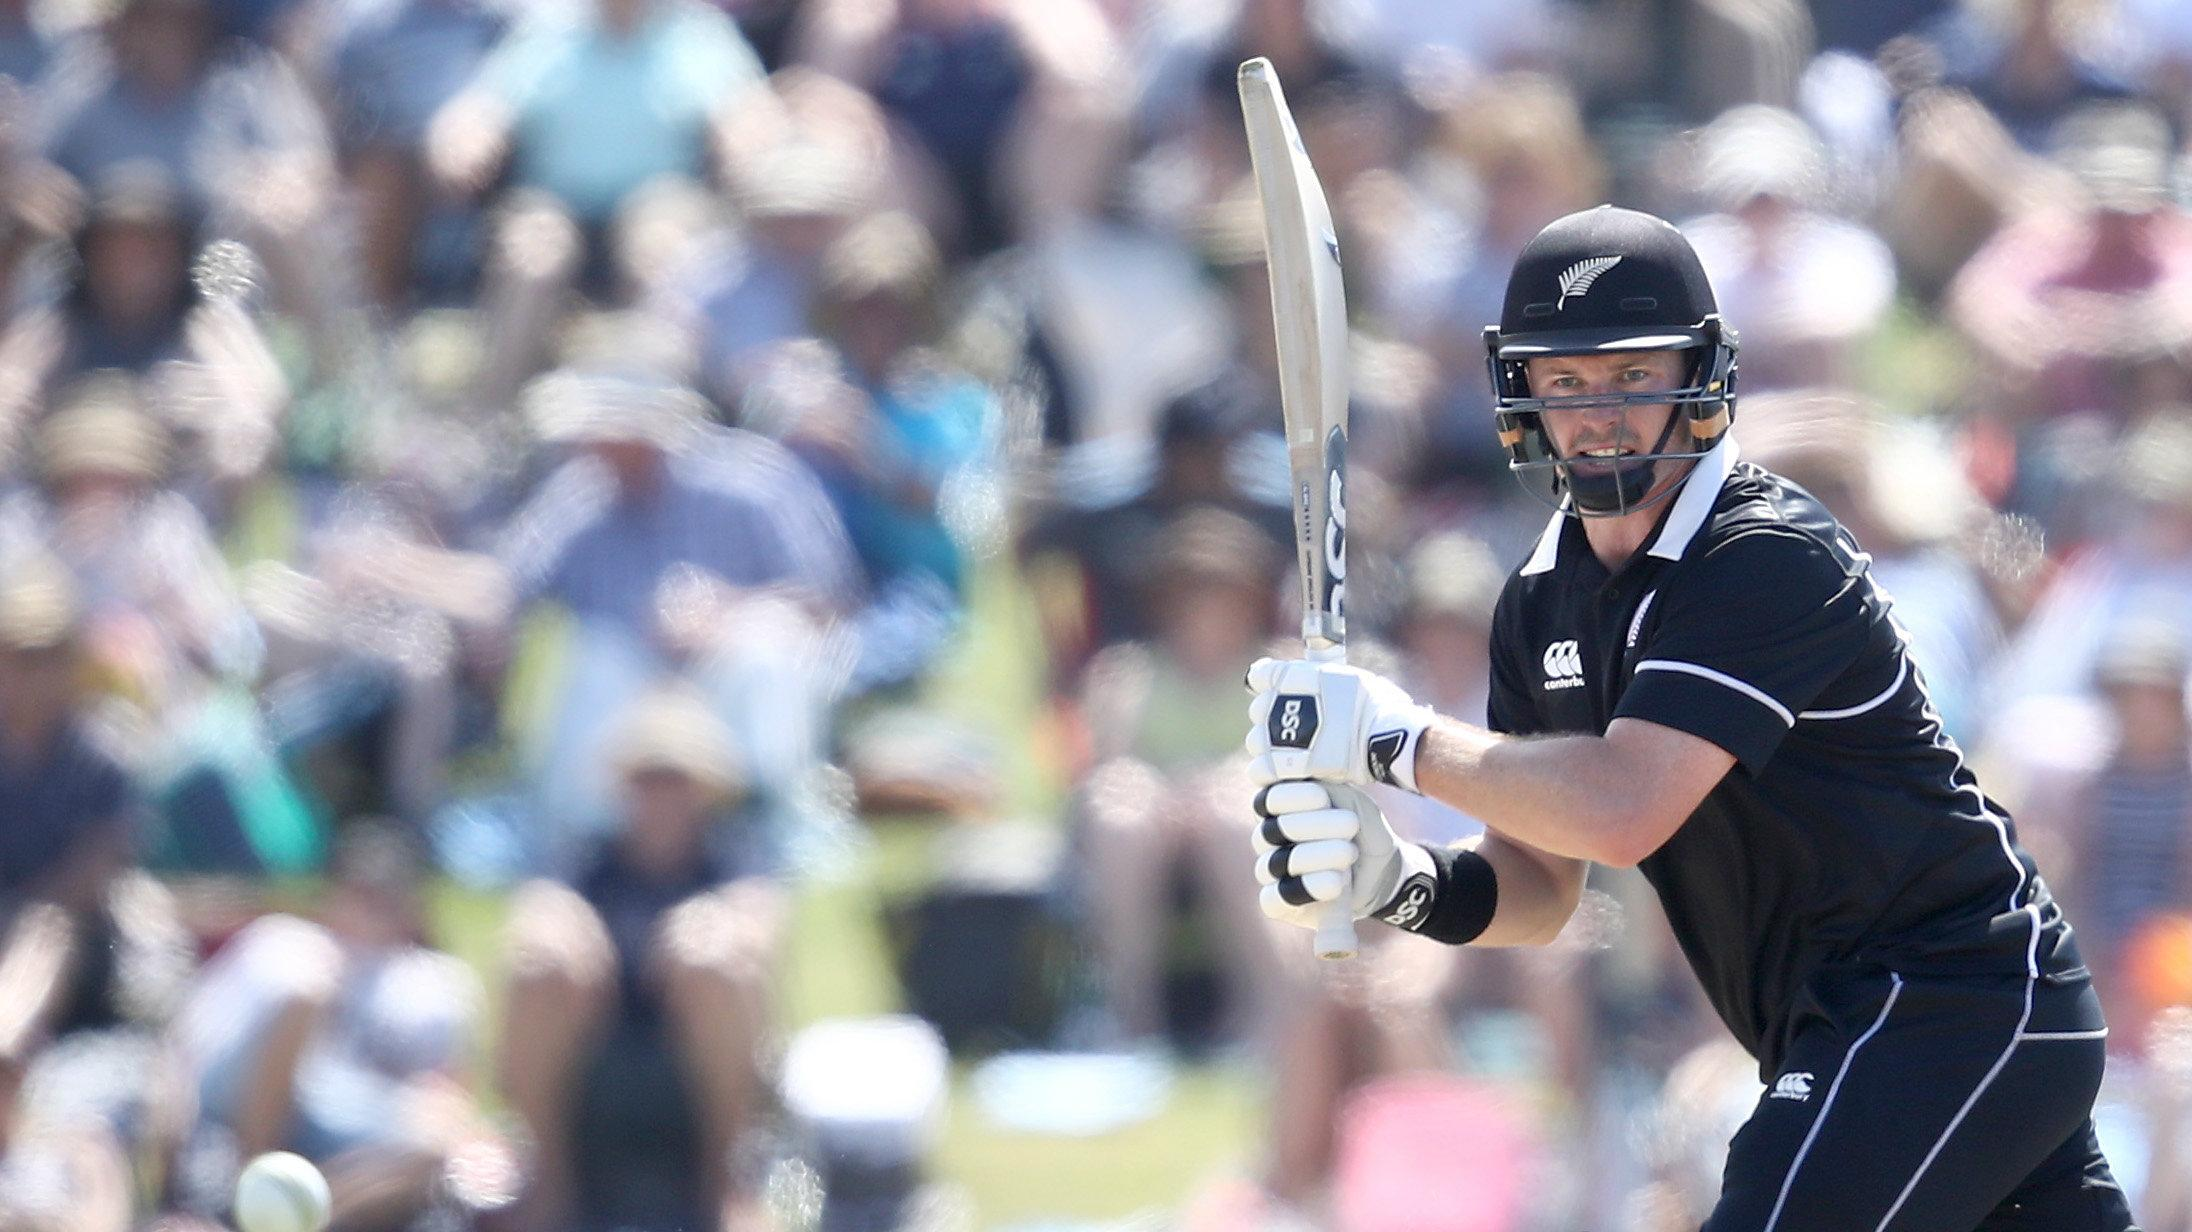 'Every game you play for New Zealand is important' – Colin Munro